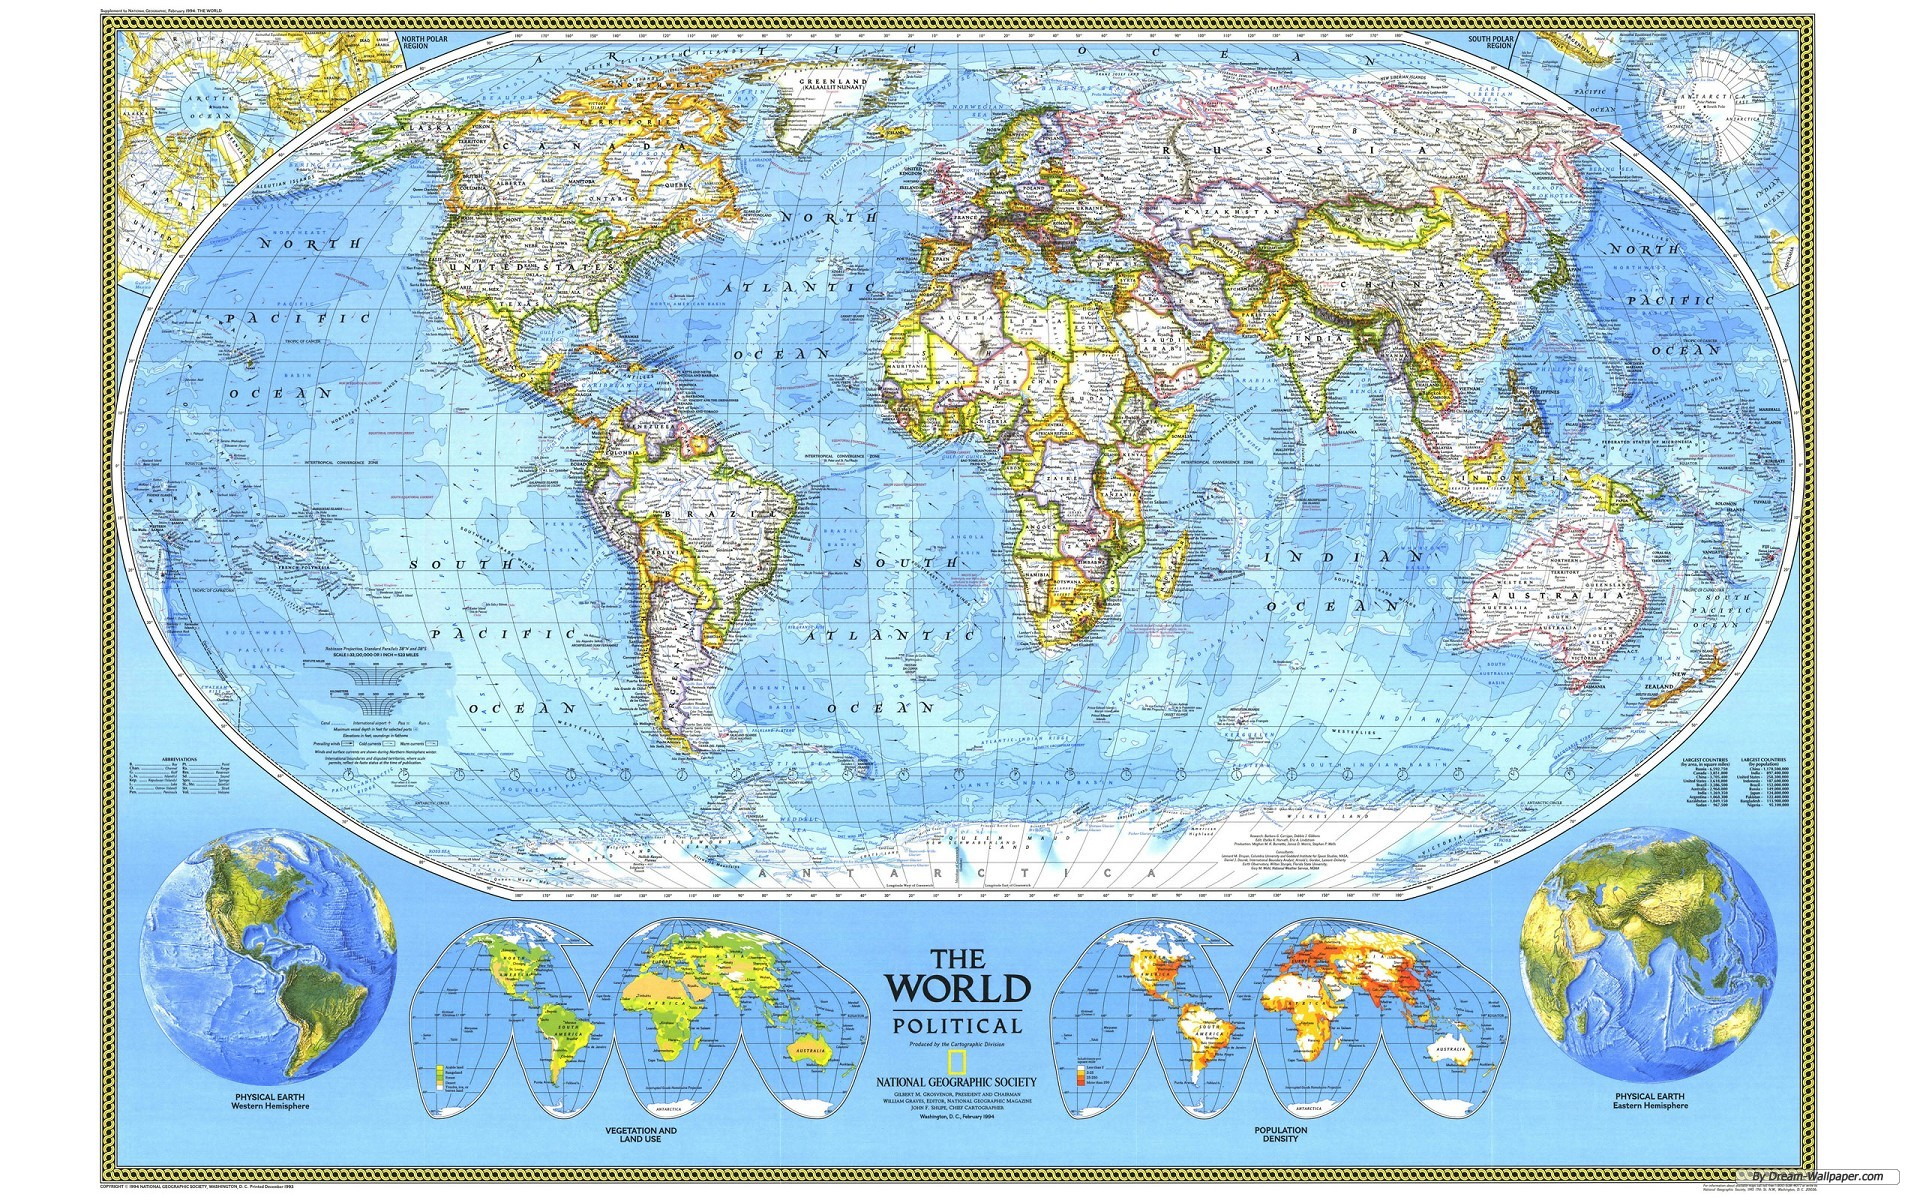 Free Map Wallpaper WallpaperSafari – Travel Maps Of The World